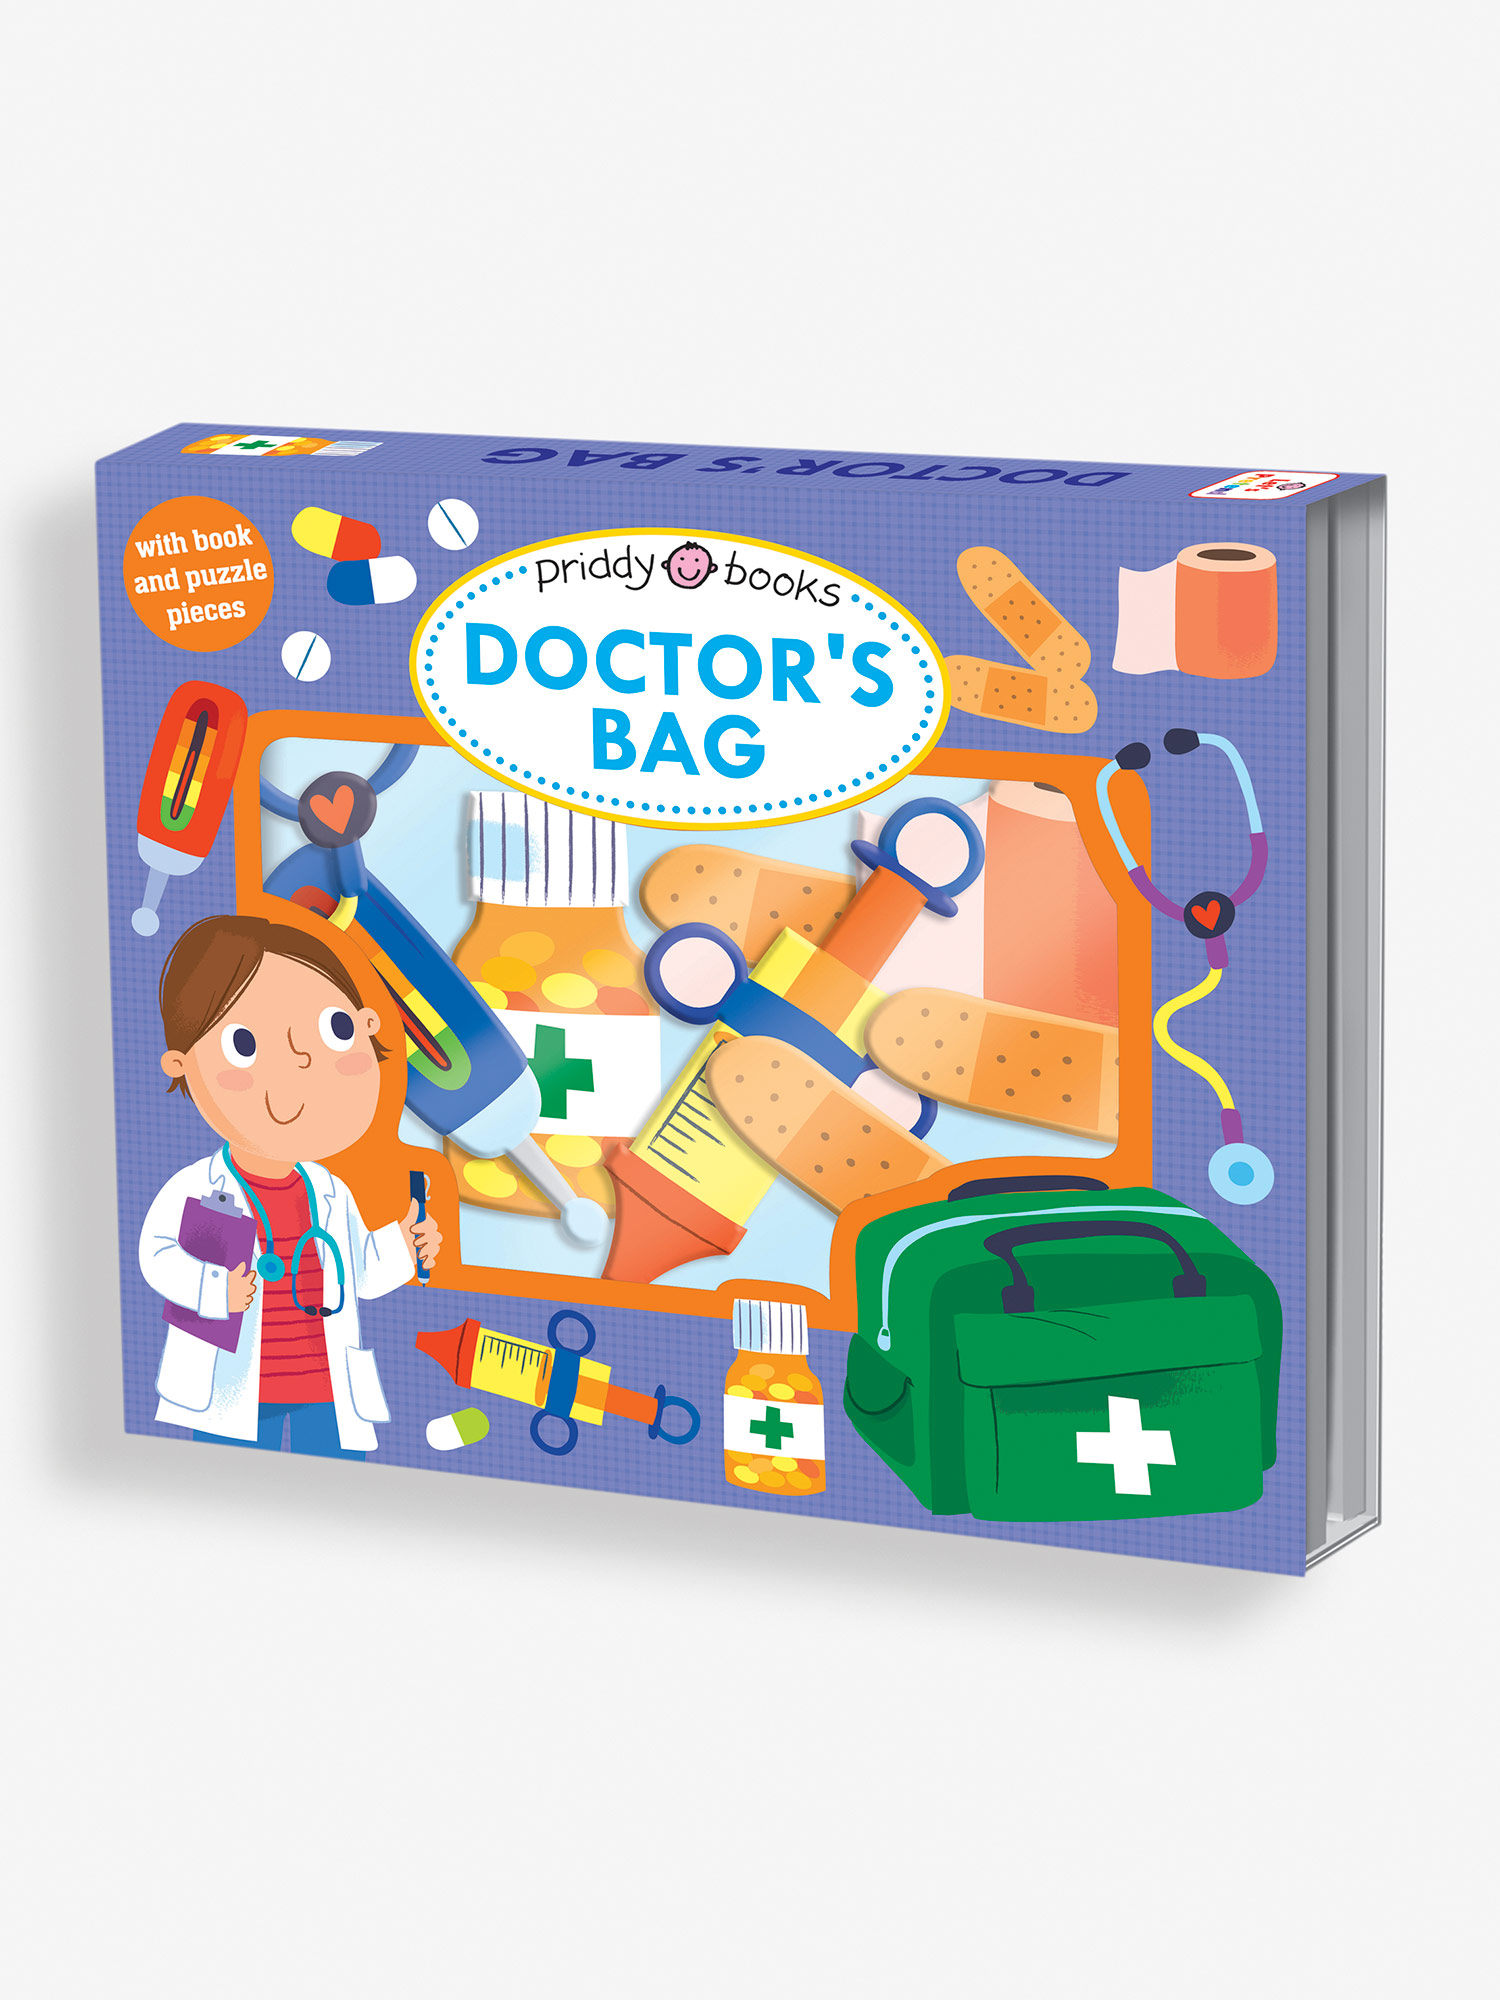 Let's Pretend Doctor's Bag Puzzle Book